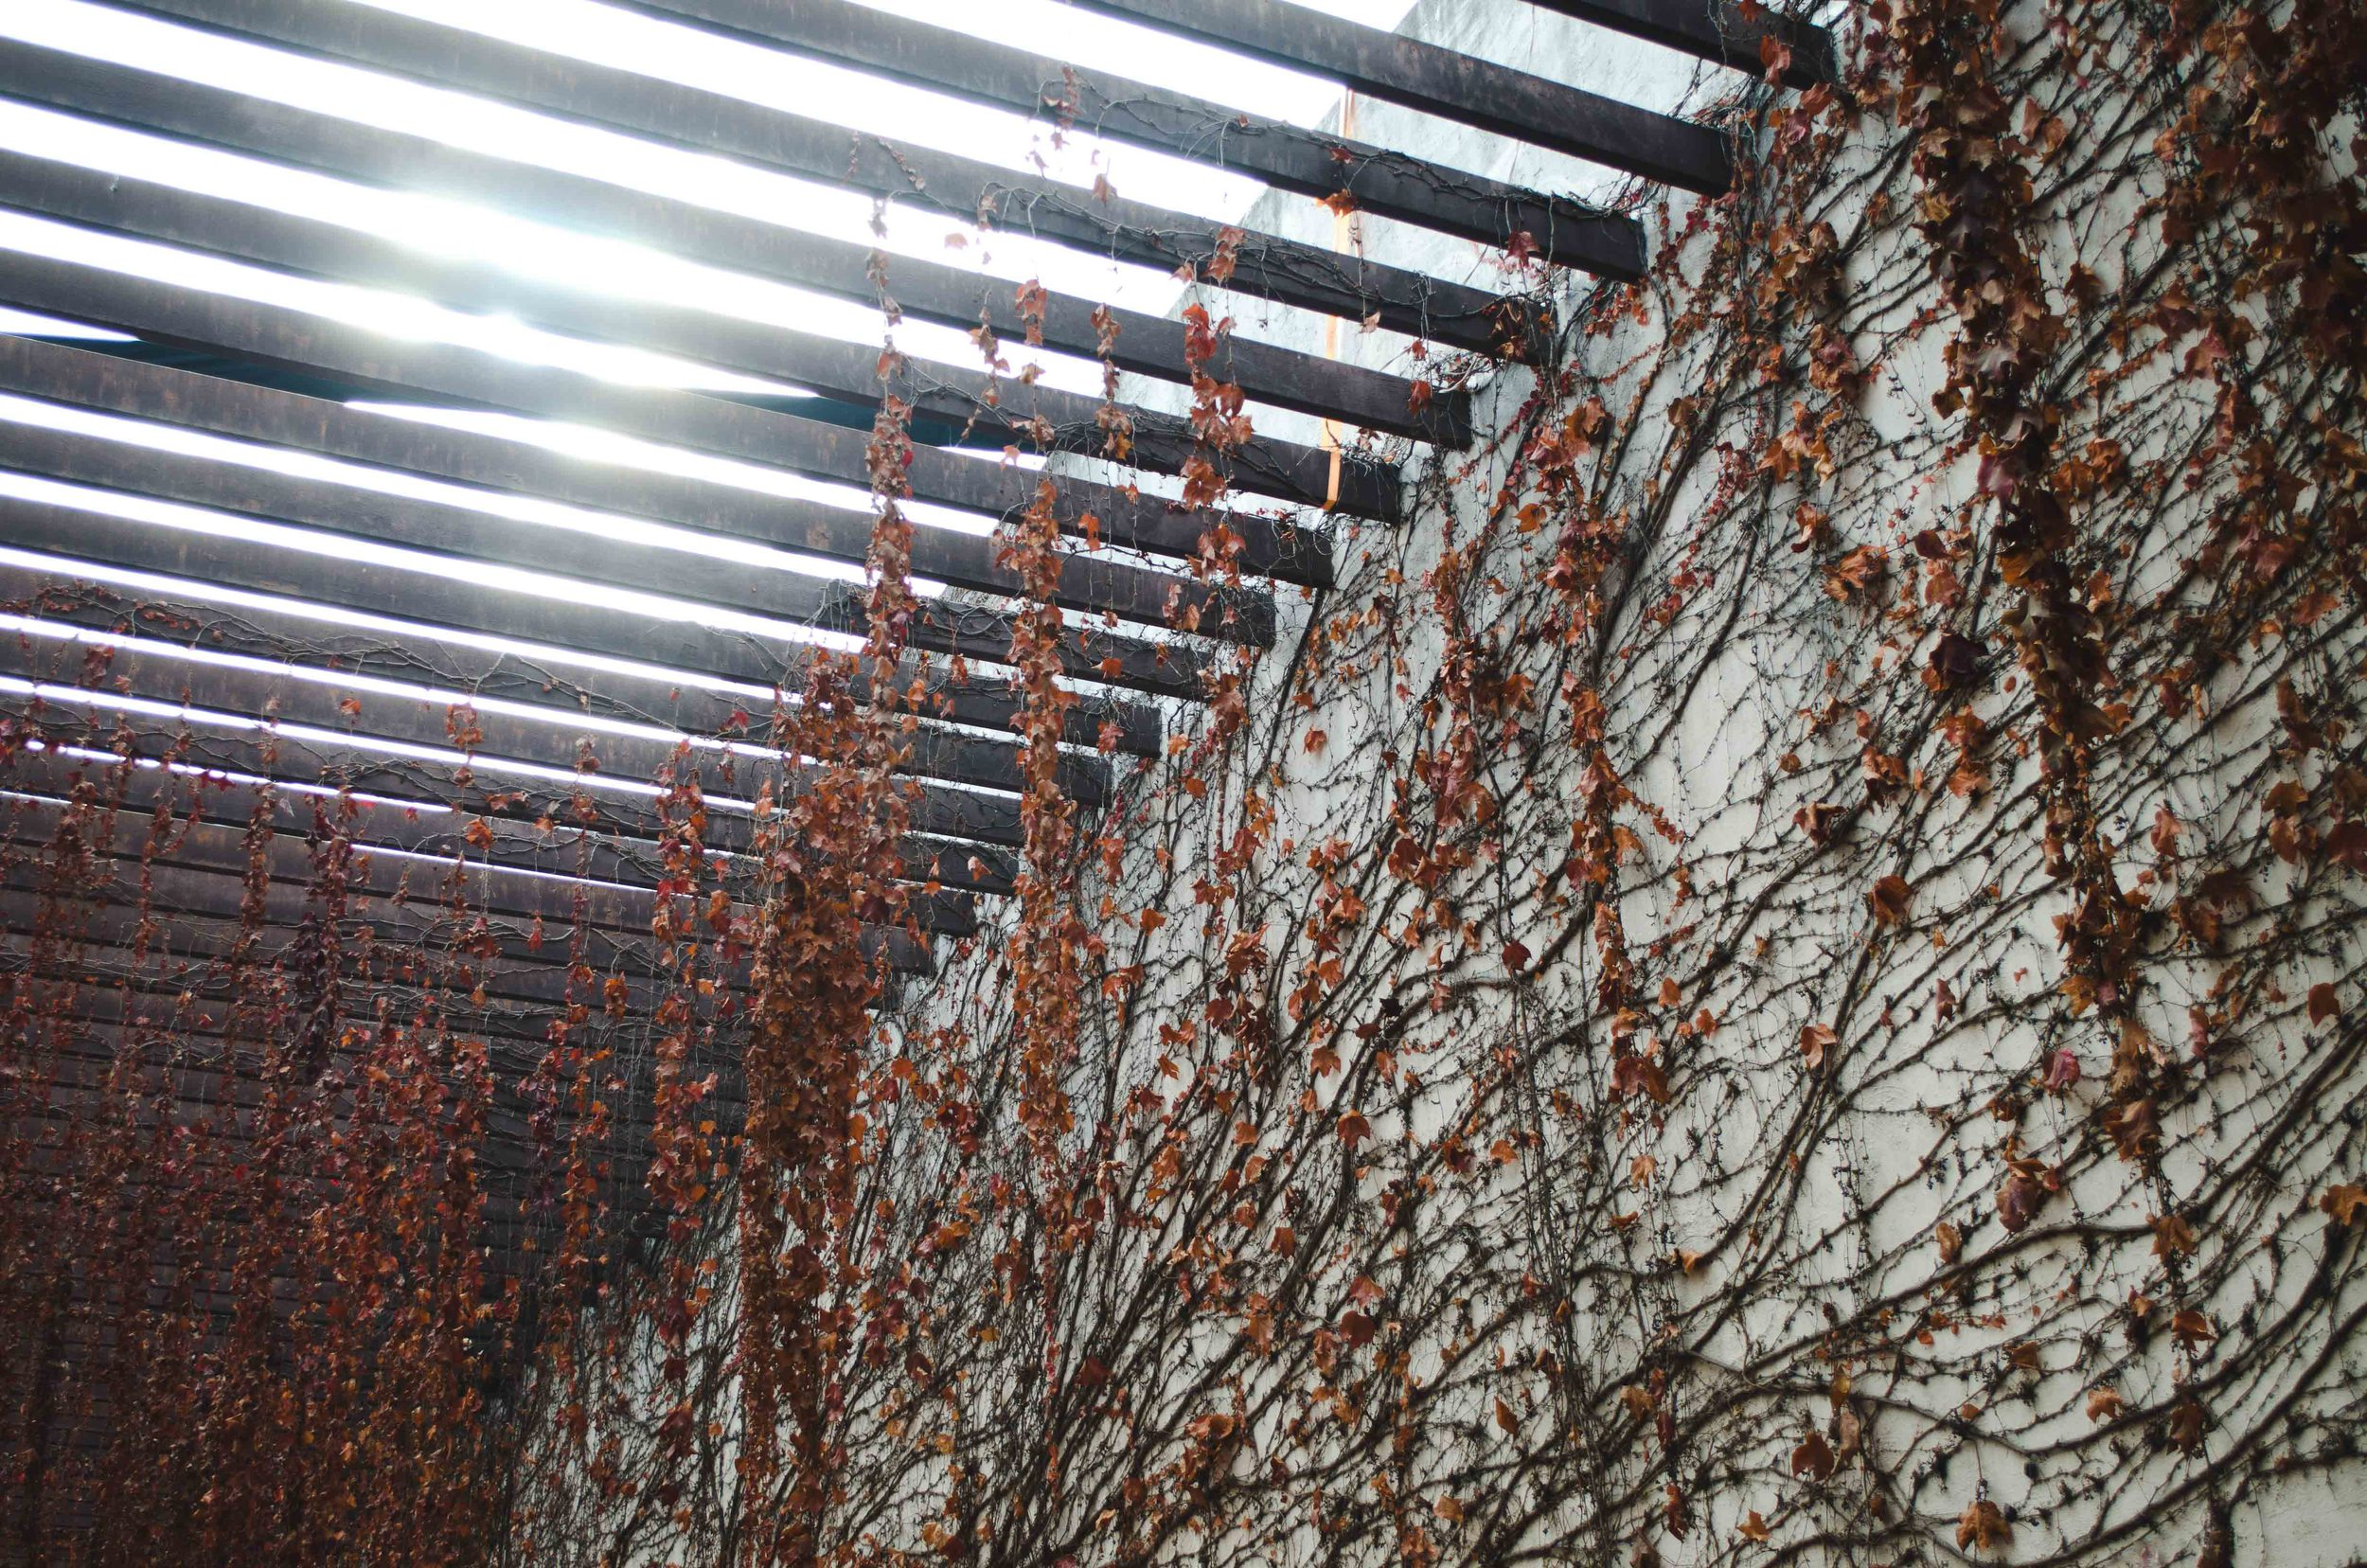 vines draped over the courtyard trellis